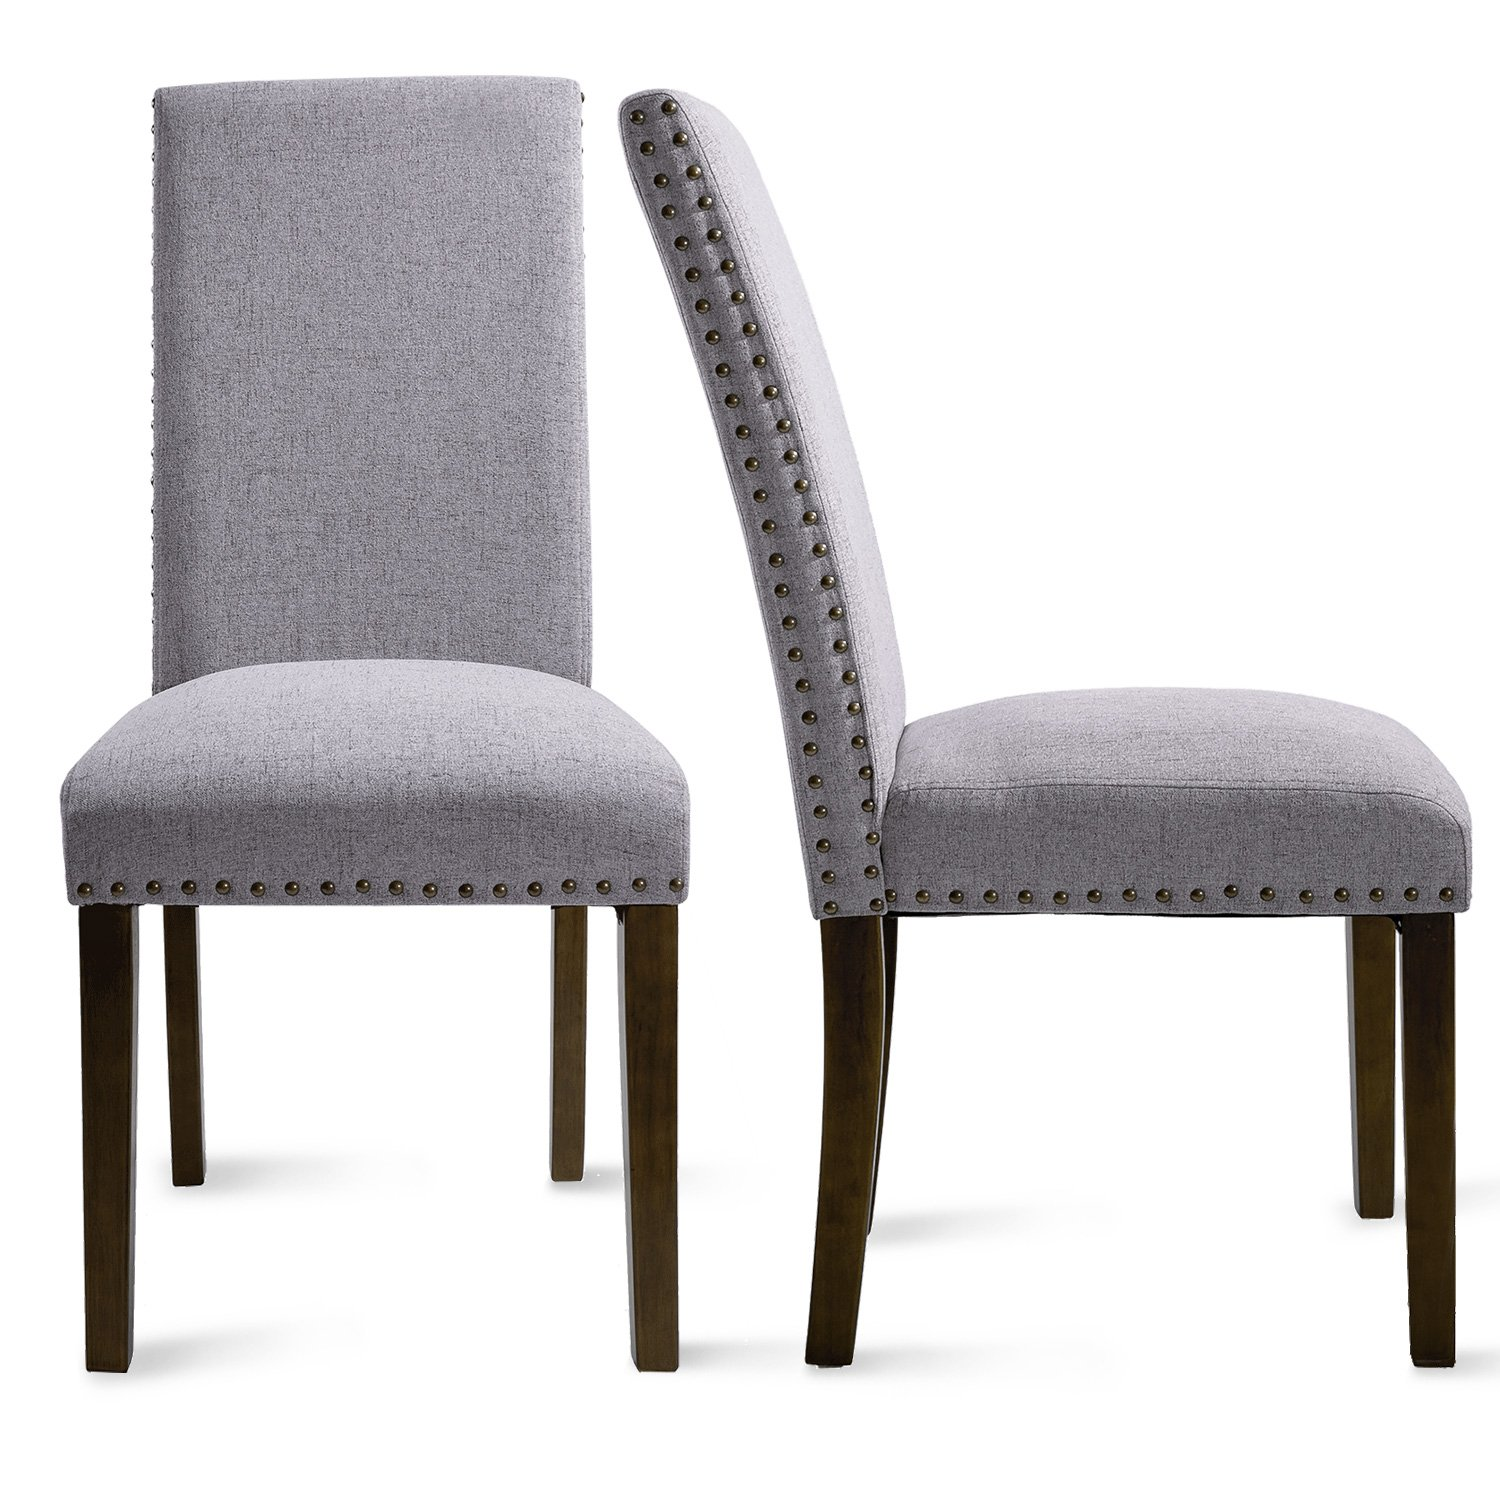 Merax PP036415 Set of 2 Fabric Dining Chairs with Copper Nails and Solid Wood Legs by Merax (Image #7)